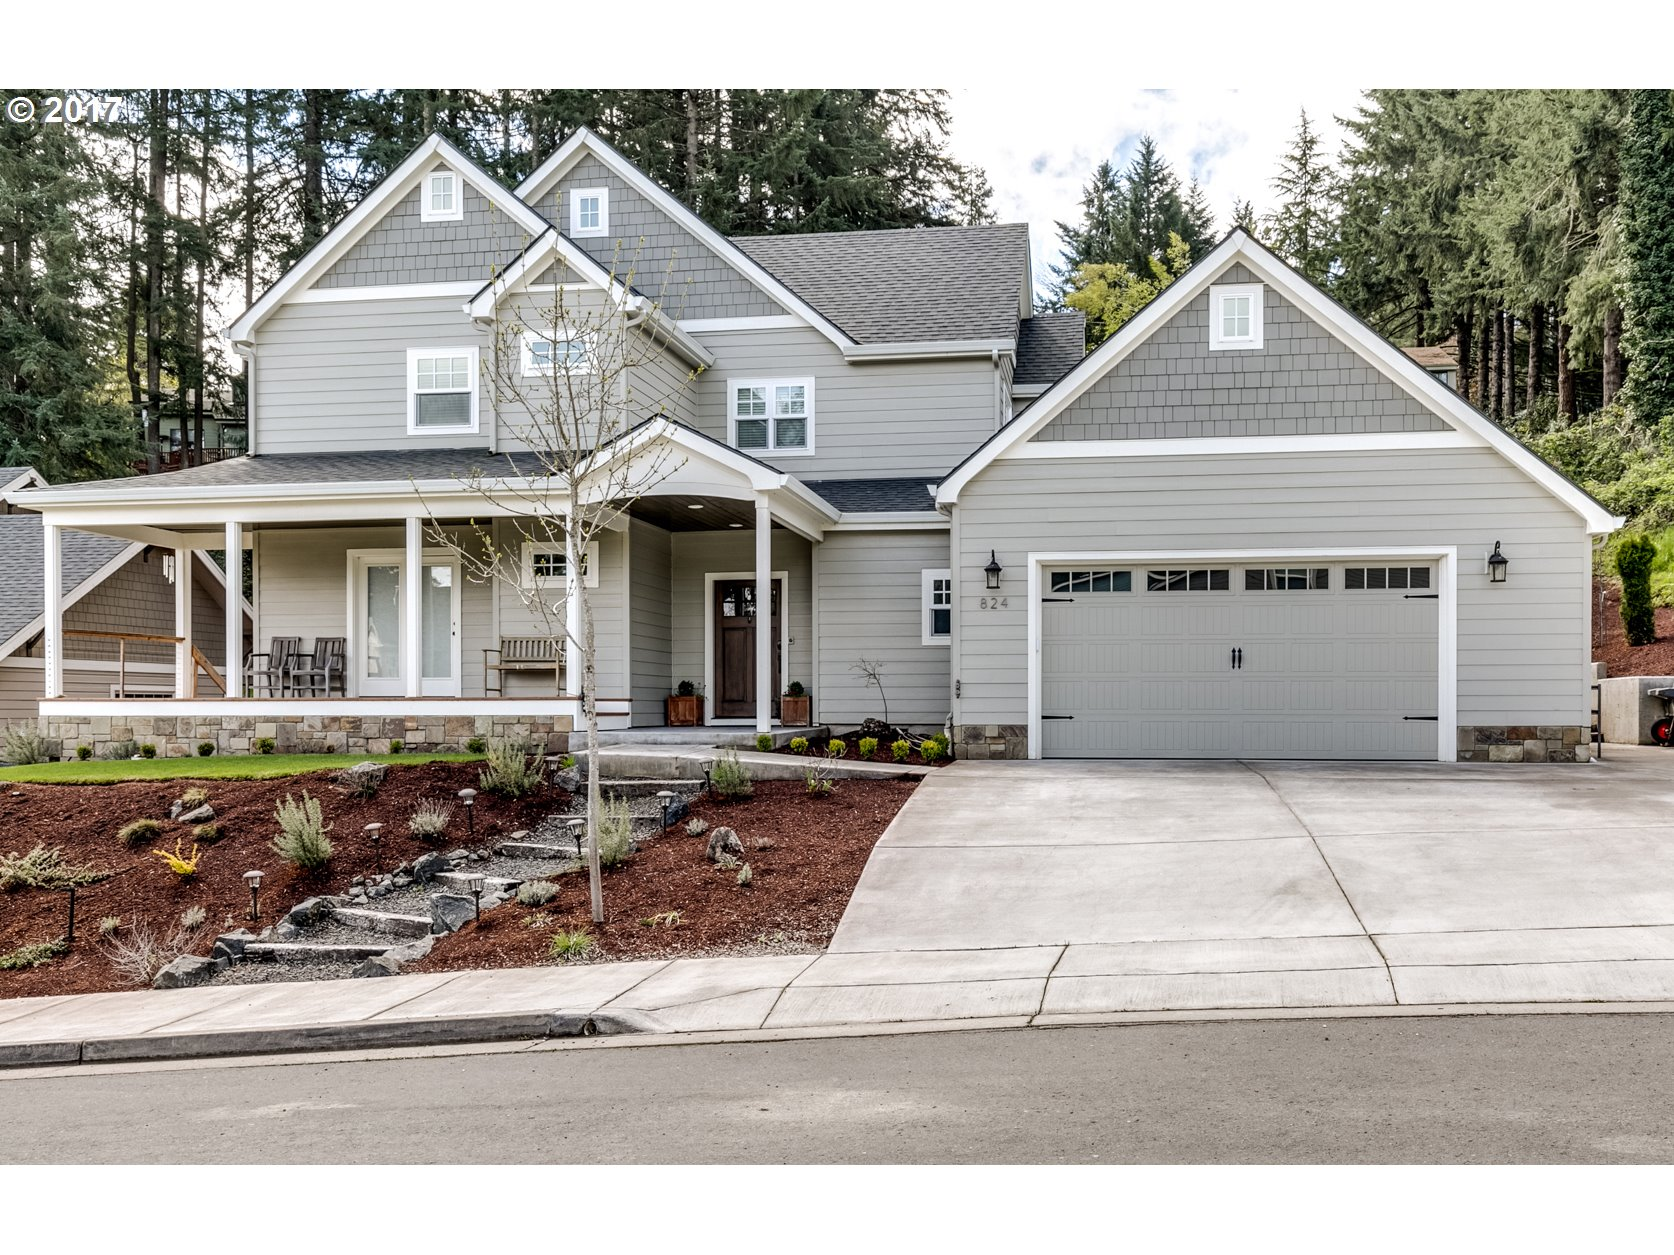 824 W 35TH PL, Eugene, OR 97405